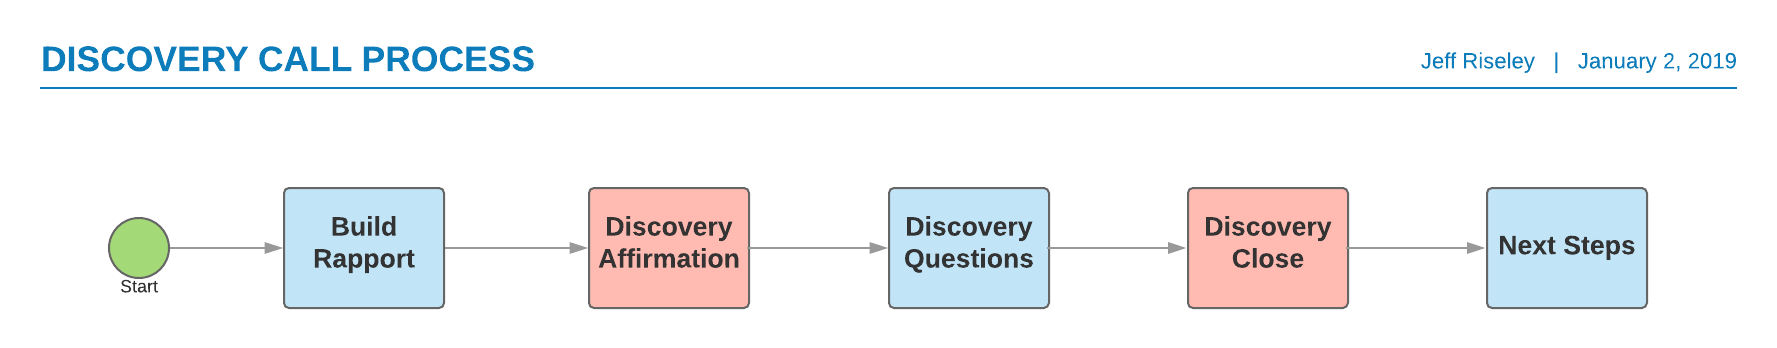 Discovery Call Process.png